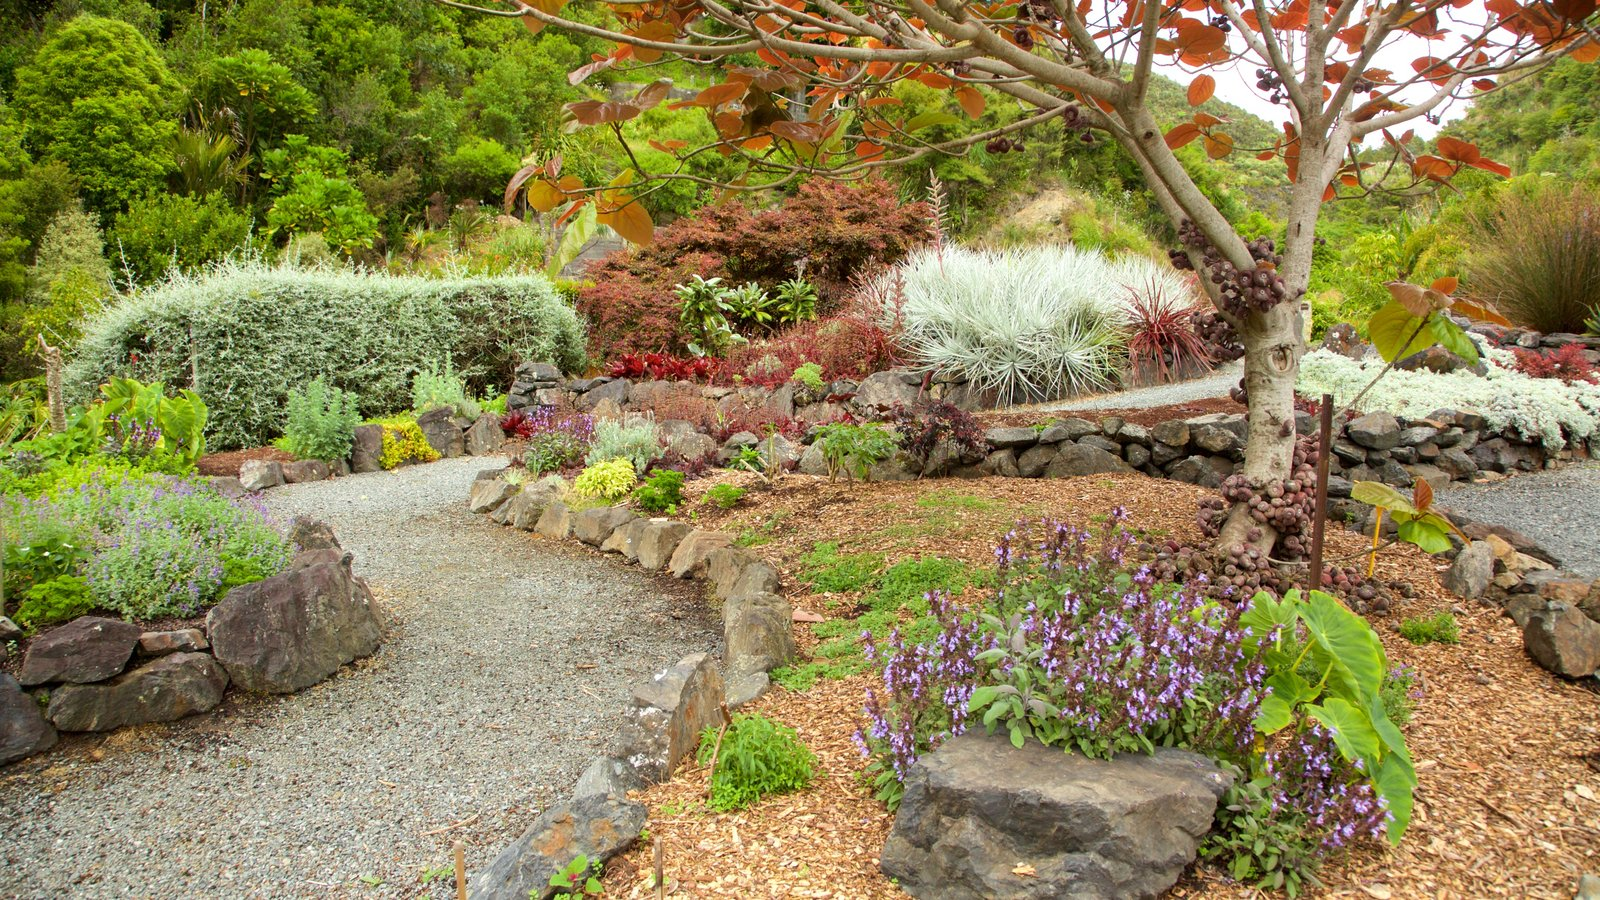 Gardens & Parks Pictures: View Images of Whangarei Quarry Gardens